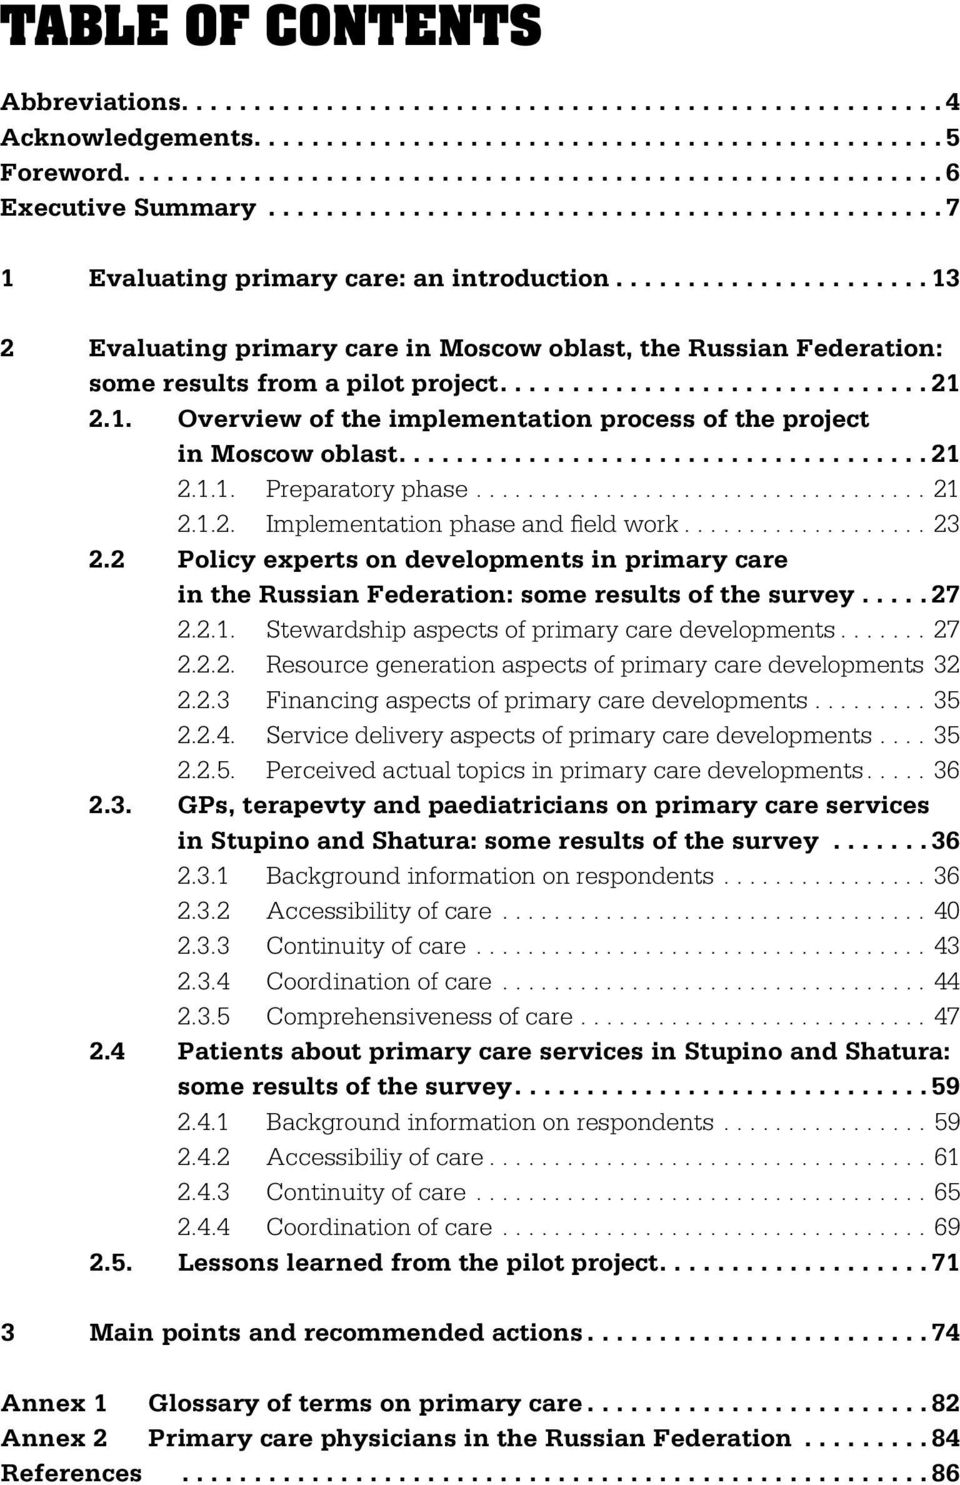 ..21 2.1.2. Implementation phase and field work...23 2.2 Policy experts on developments in primary care in the Russian Federation: some results of the survey..... 27 2.2.1. Stewardship aspects of primary care developments.